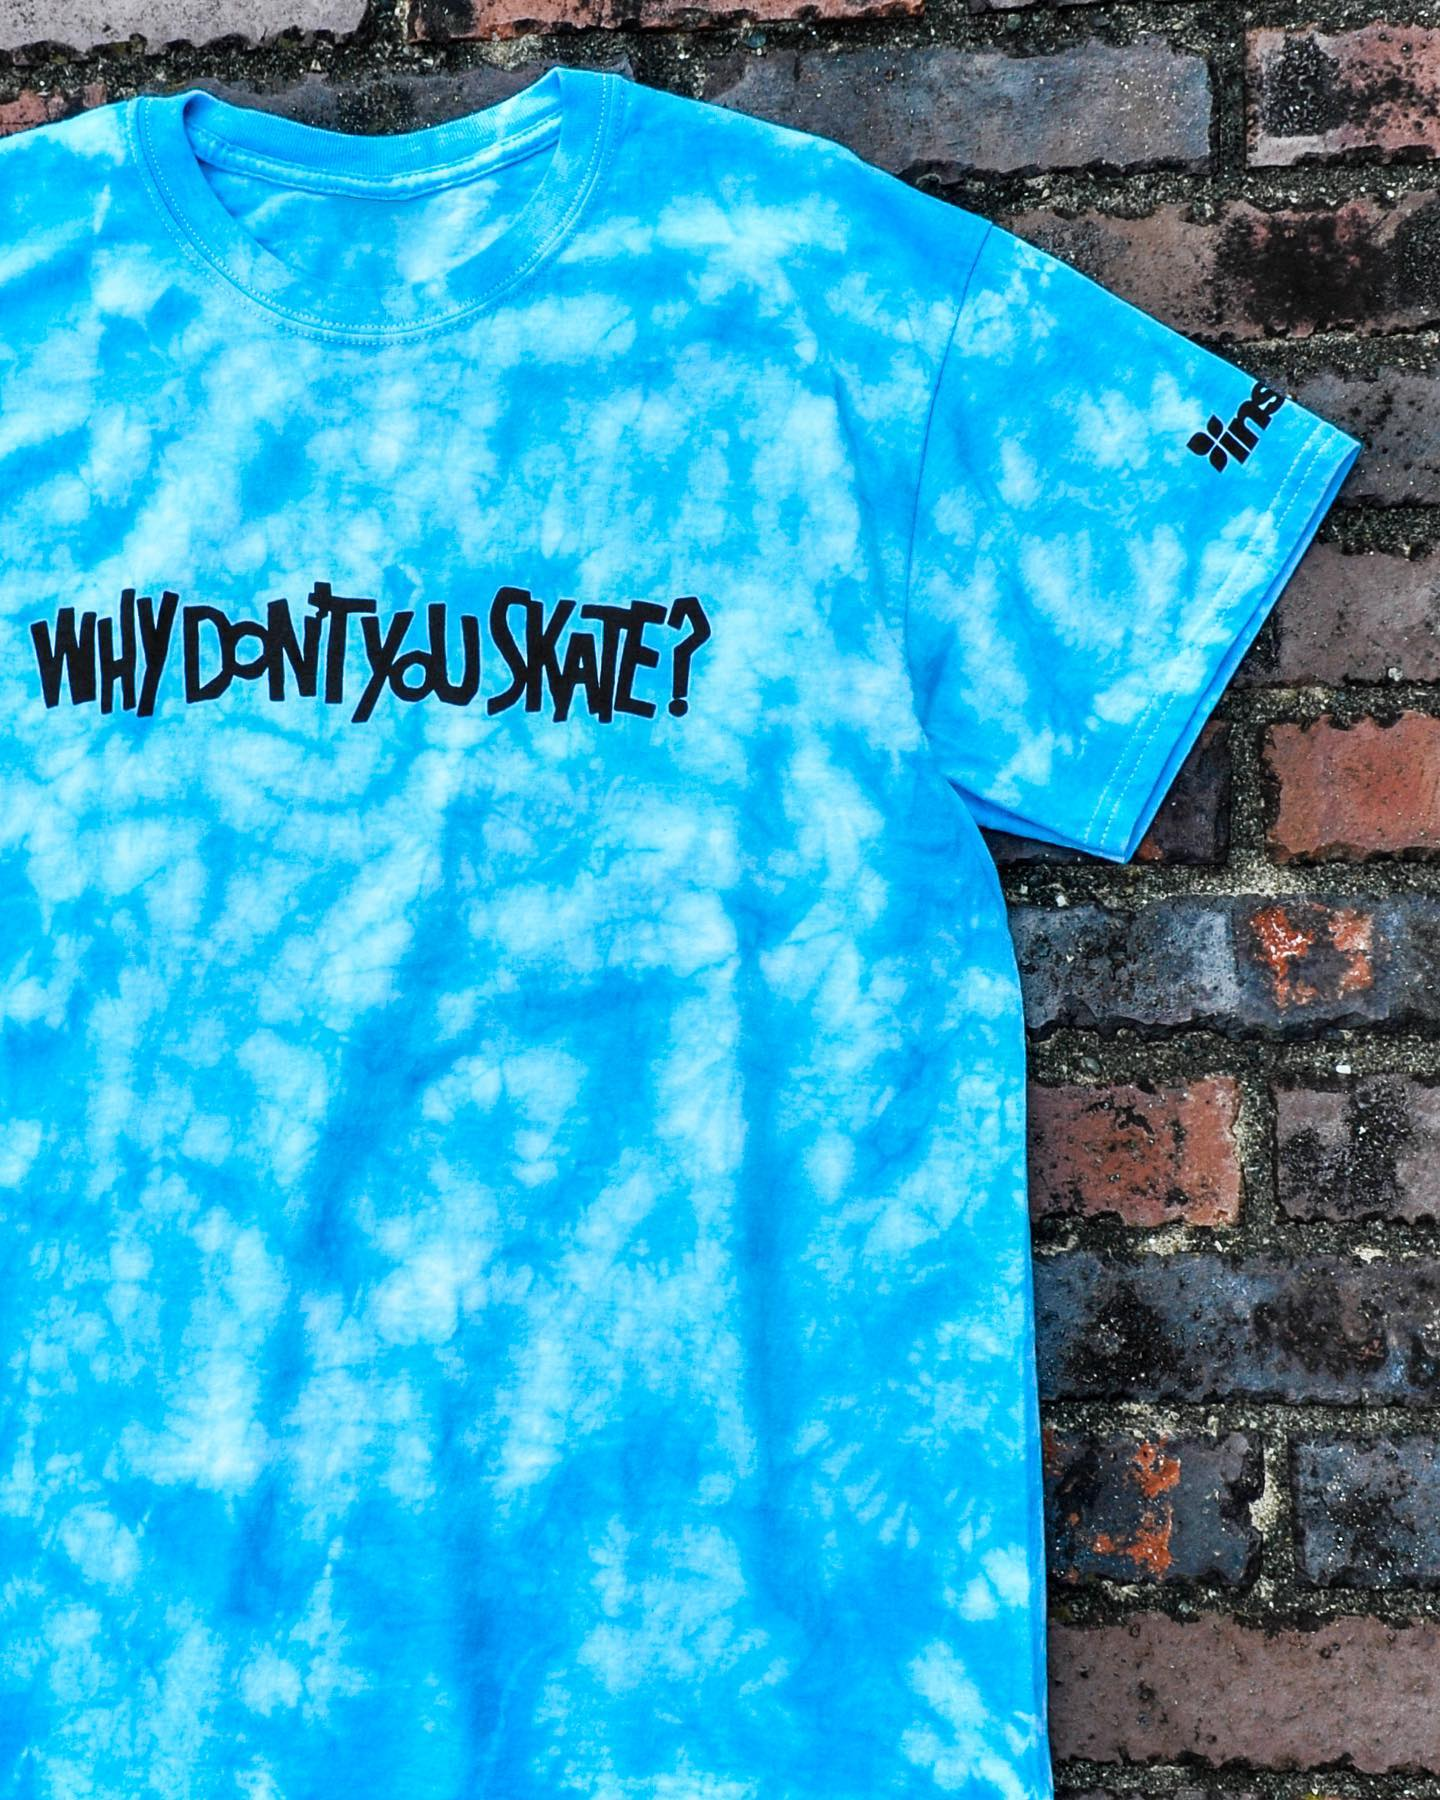 Instant SBY TEE2020.09.18 on sale.-Why don't you skate?-#instantskateshop #i25tant